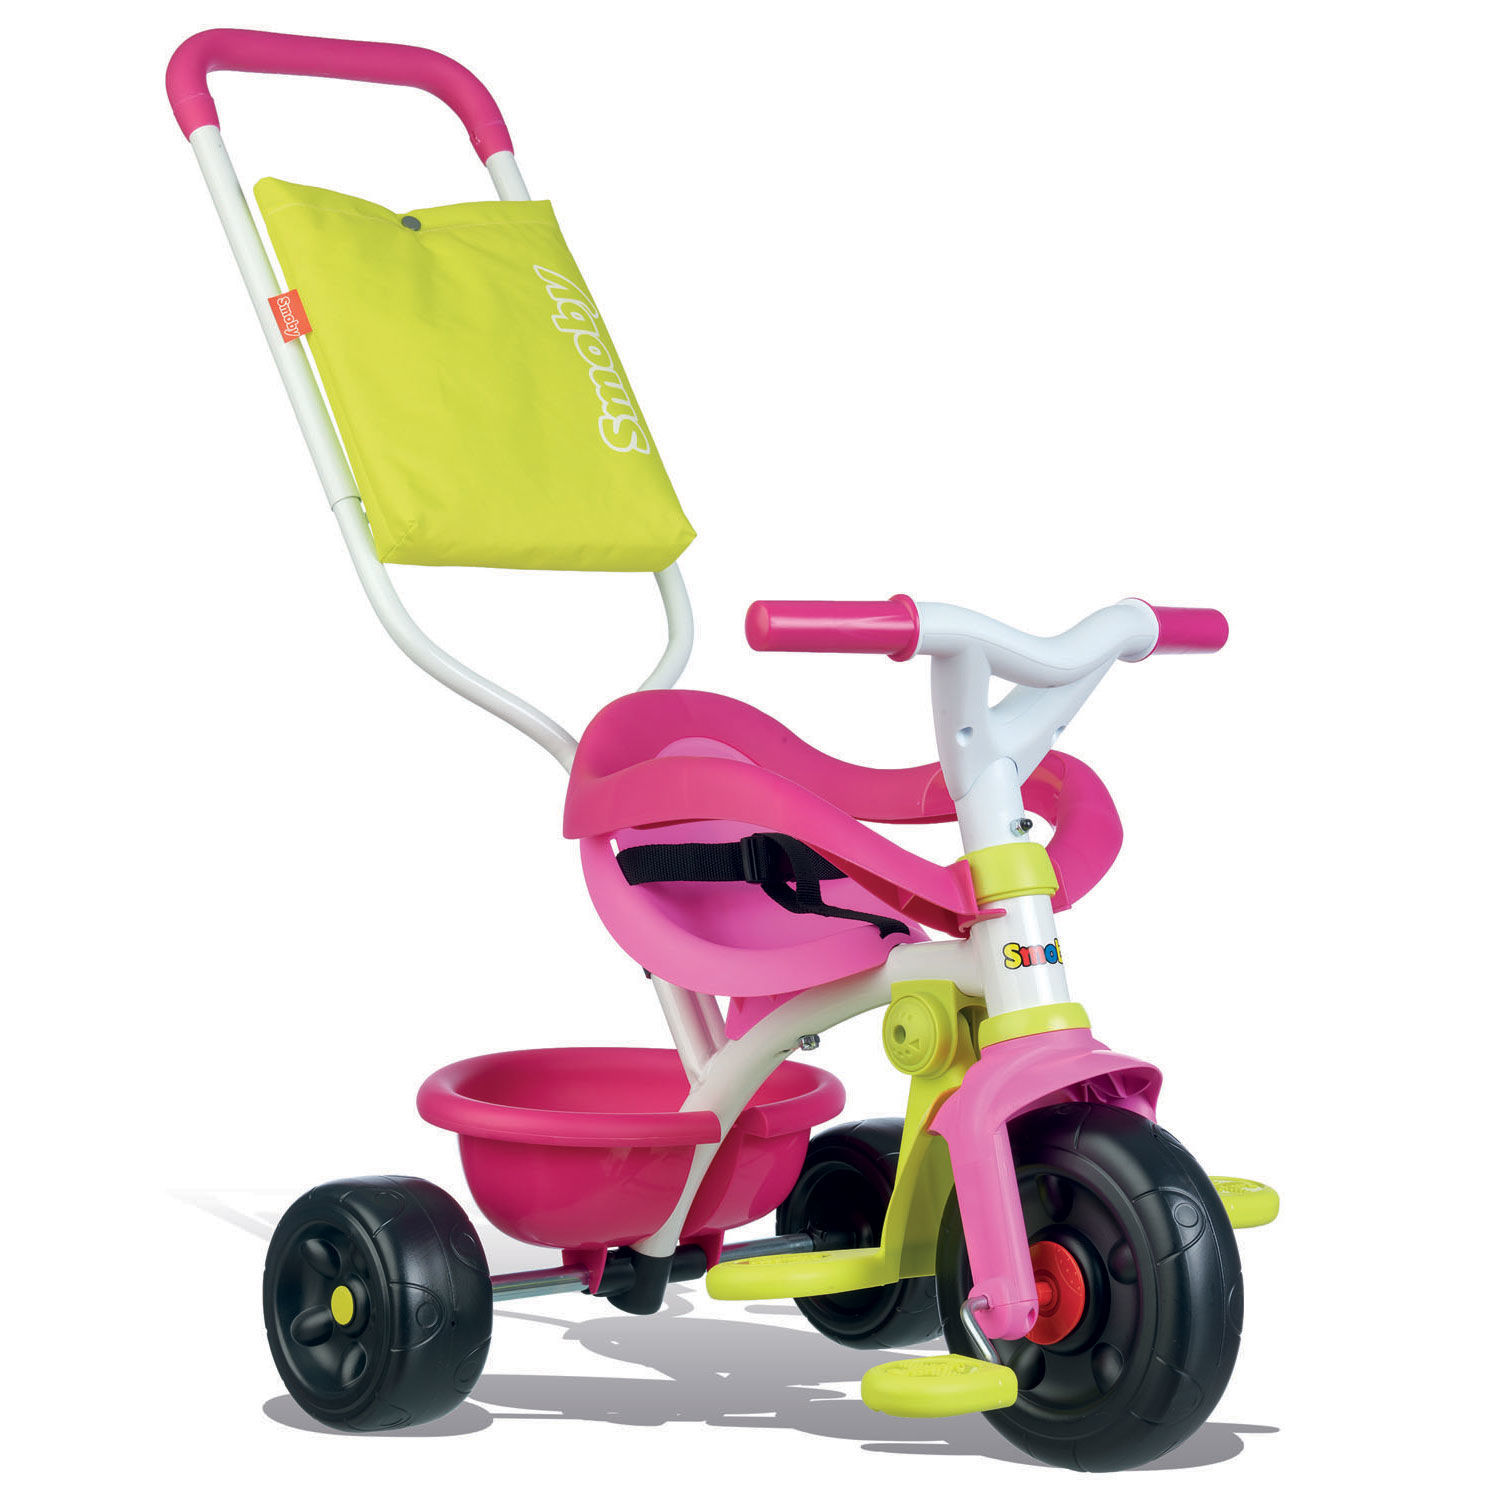 Image de TRICYCLE BE FUN CONFORT ROSE 740406